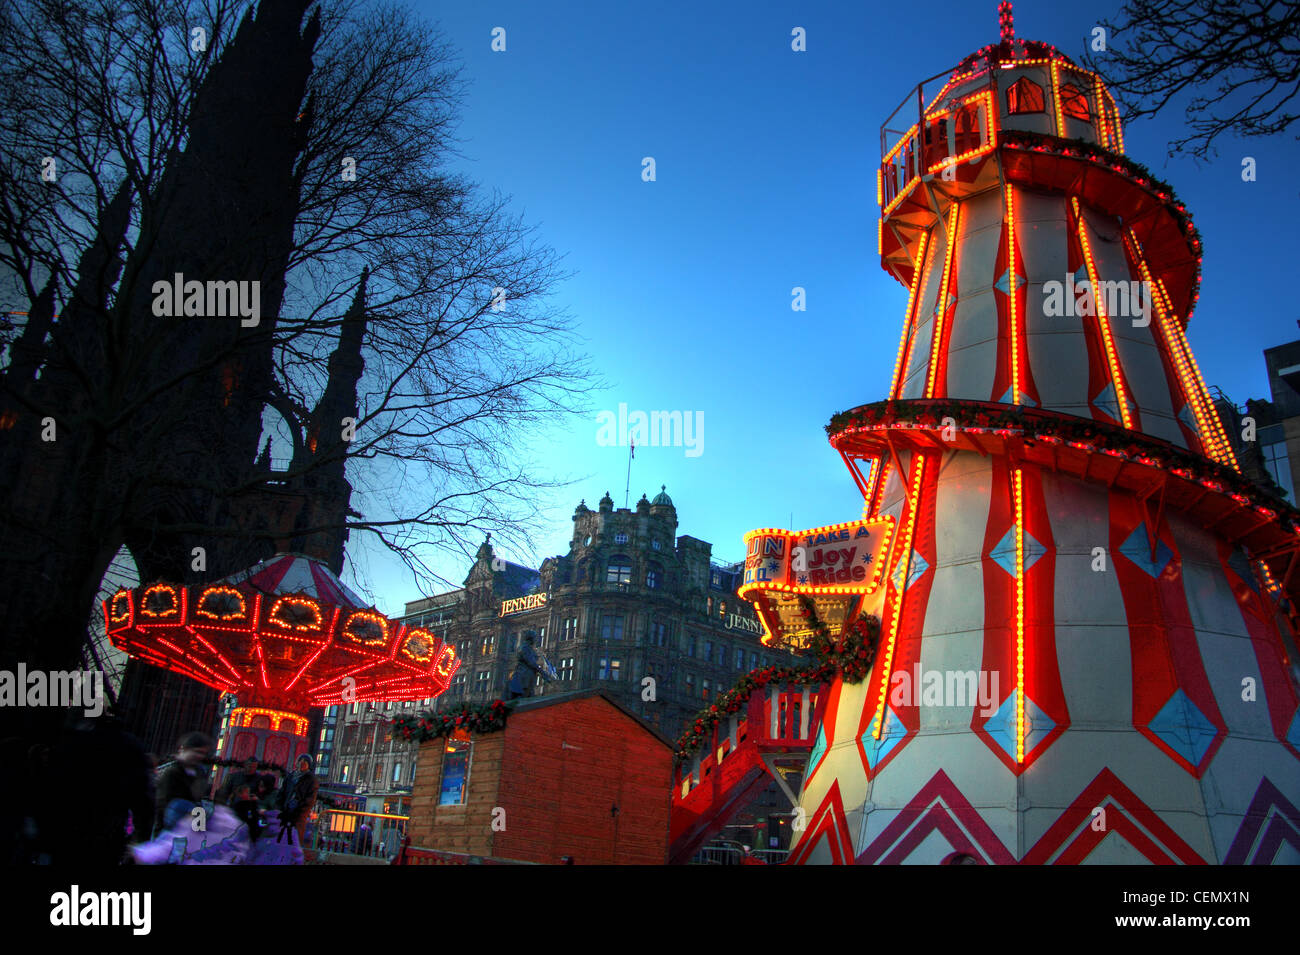 Hogmanay Fair in Princes St Gardens,Edinburgh,Near,Jenners,Fayre,amusments,amusements,Scotland,city,new,year,UK,hogmanay,tonysmith,tony,smith,Christmas,new,year,newyear,fun,tourists,tour,memorial,Jenner,scottish,independance,independence,home,rule,devolution,parliament,SNP,national,party,@Hotpix,Lothian Road,Leith,st,A1,A7,capital,city,of,Scottish,people,ecosse,ecose,gotonysmith,schotland fun in,Tour,tourist,tourism,tourist,attraction,Scotland,Capital,City,Scots,Scottish,icon,iconic,@Hotpixuk,HotpixUk,fair,fayre,Buy Pictures of,Buy Images Of,Tourist Attraction,city Centre,Edinburgh Fair,Edinburgh Fayres